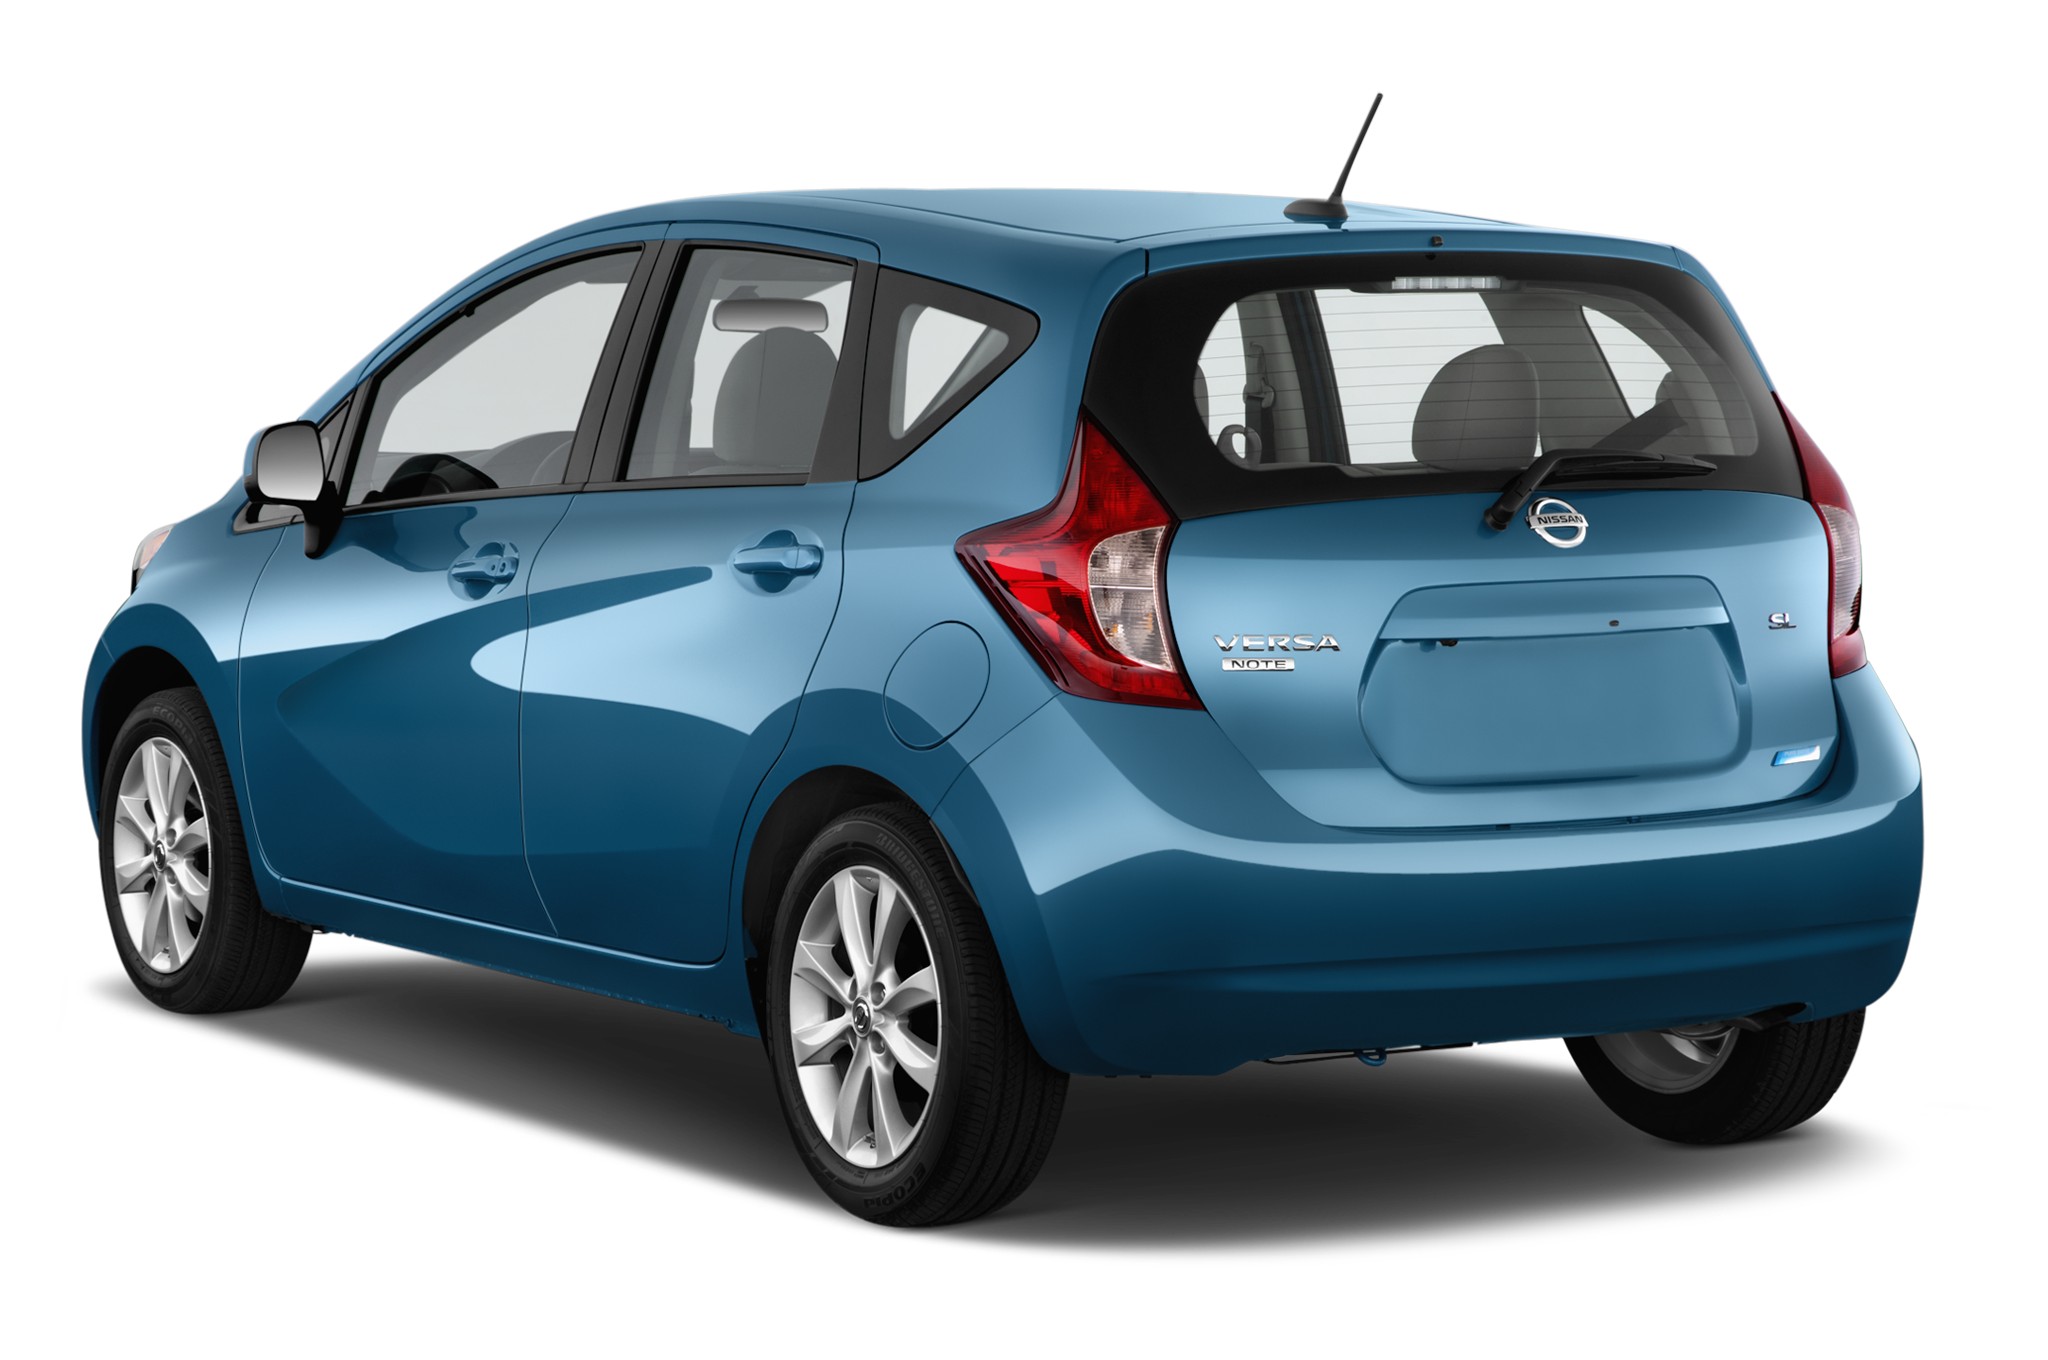 Nissan VERSA NOTE 1.6 SV CVT   2014 ( PRICES U0026 SPECS )